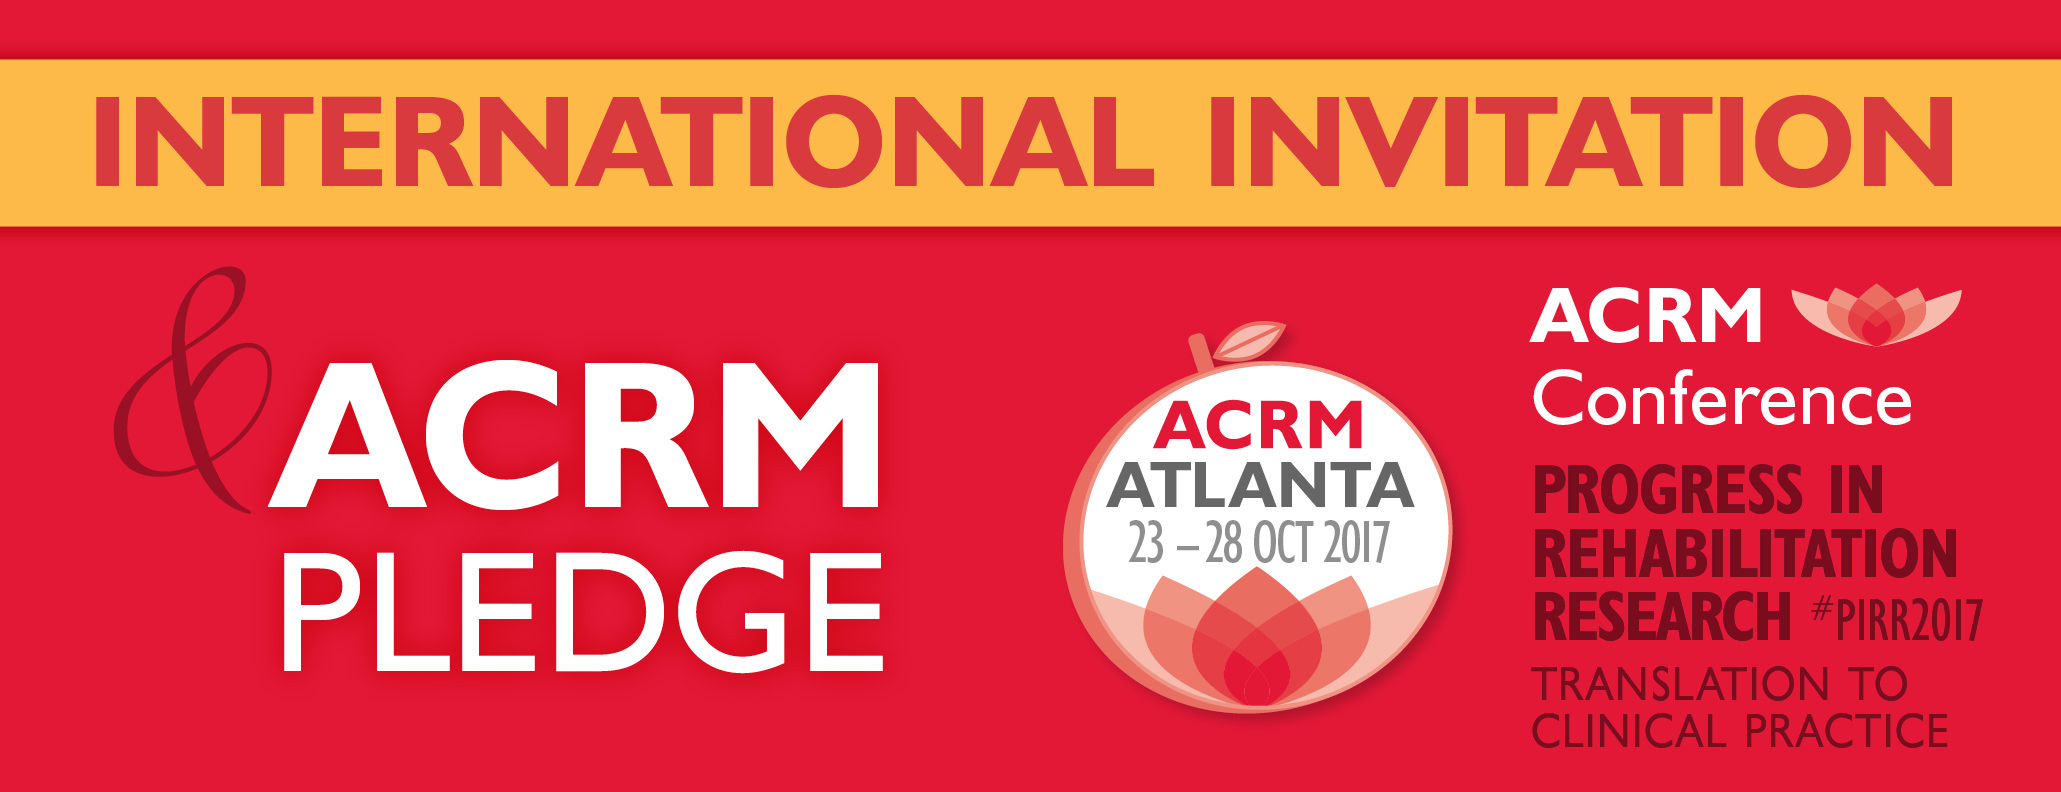 INTERNATIONAL INVITATION & ACRM Pledge